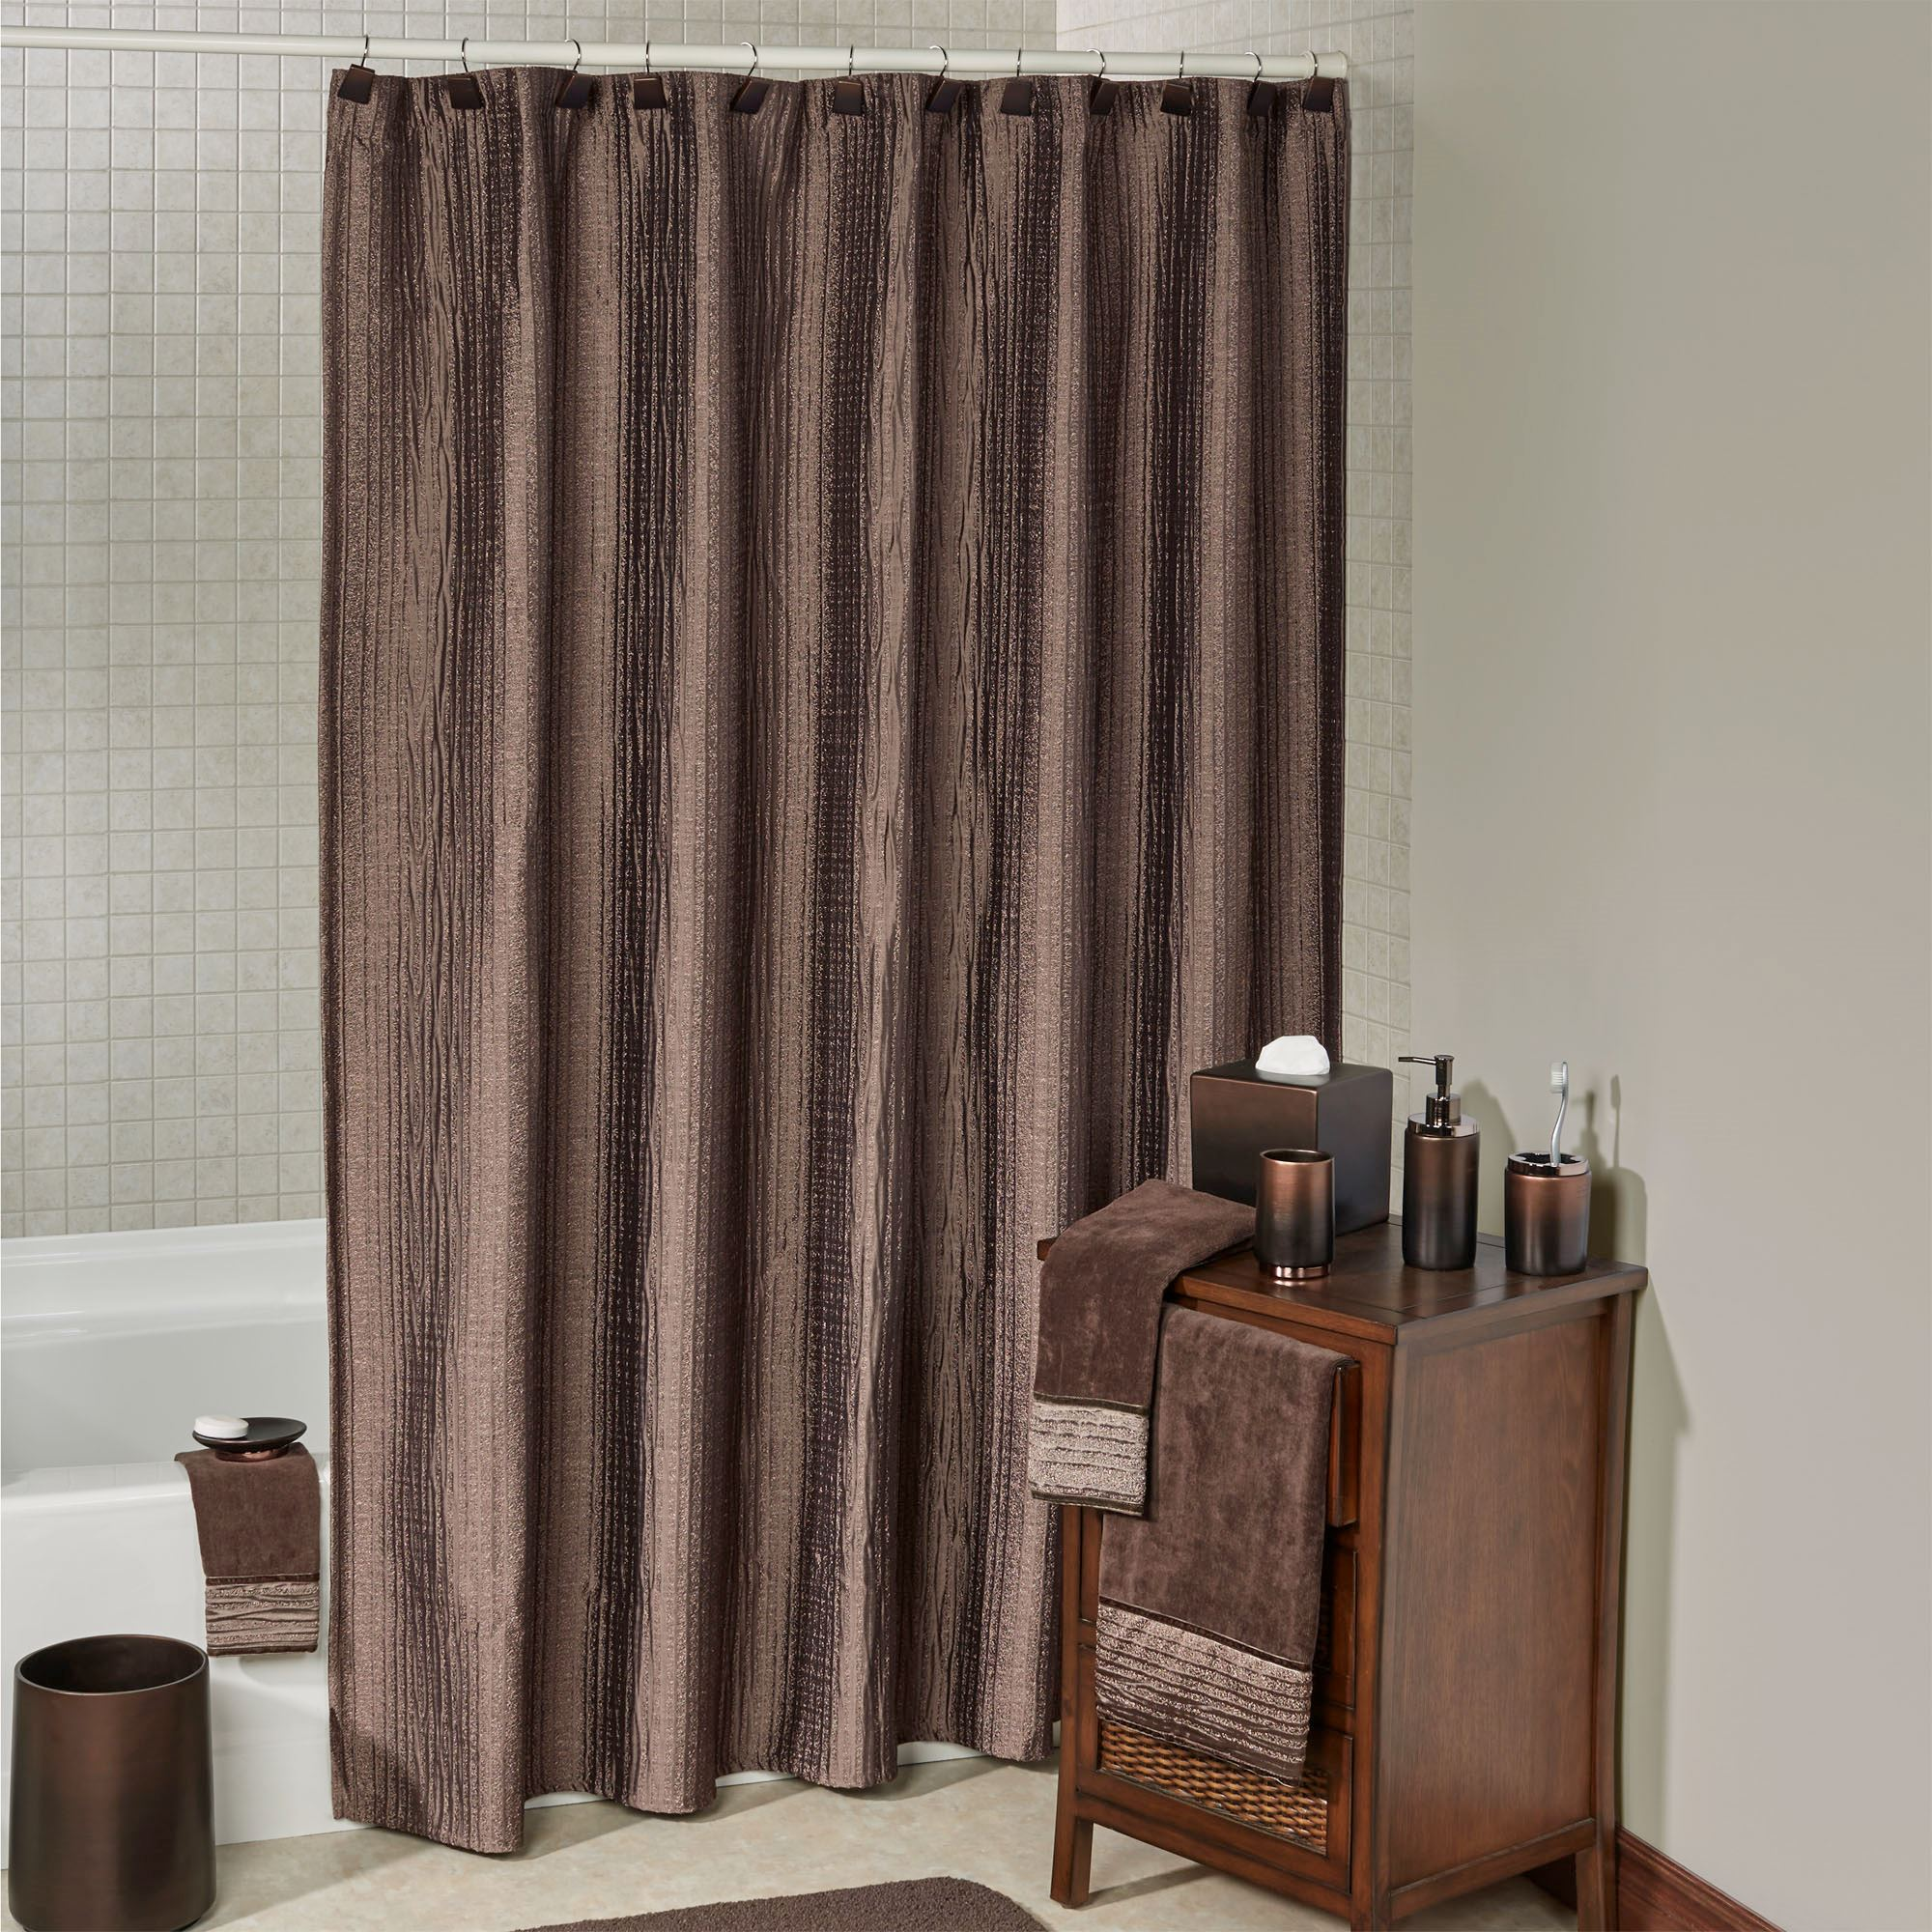 shower print modern all southwestern animal affordable decor purple curtains curtain for image sets of conditions home